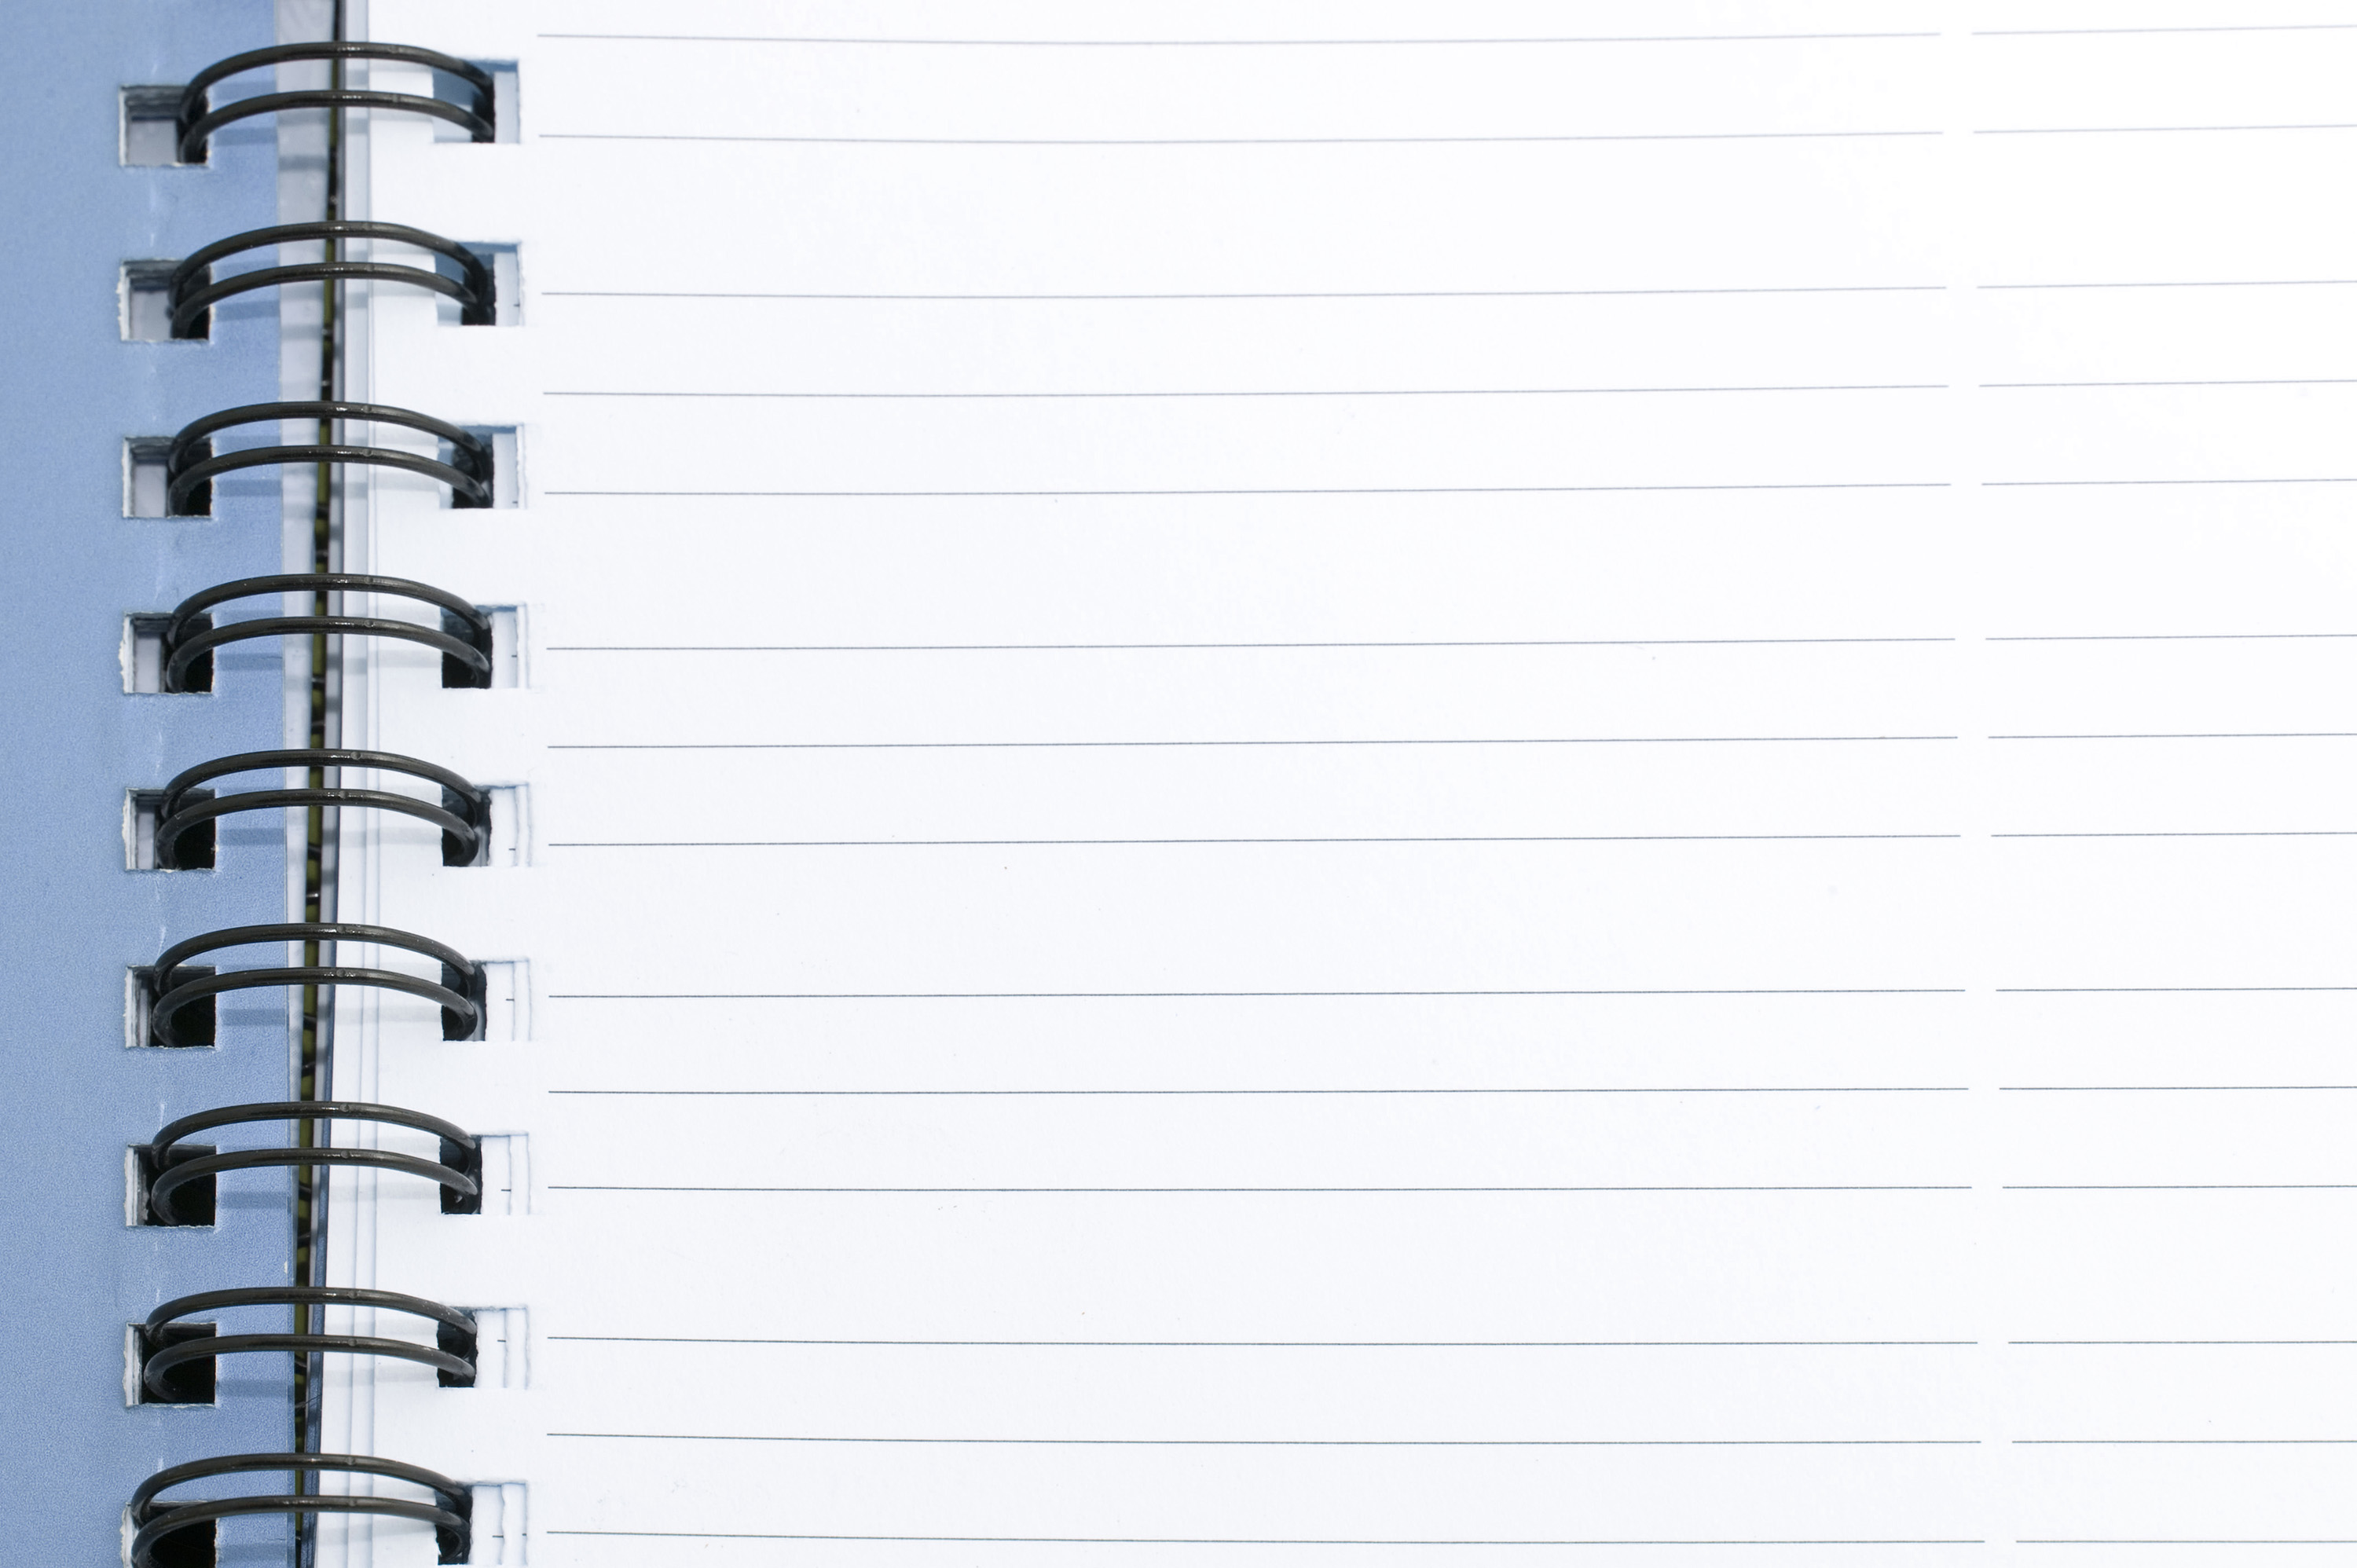 Free Image Of Blank Lined Notebook Page